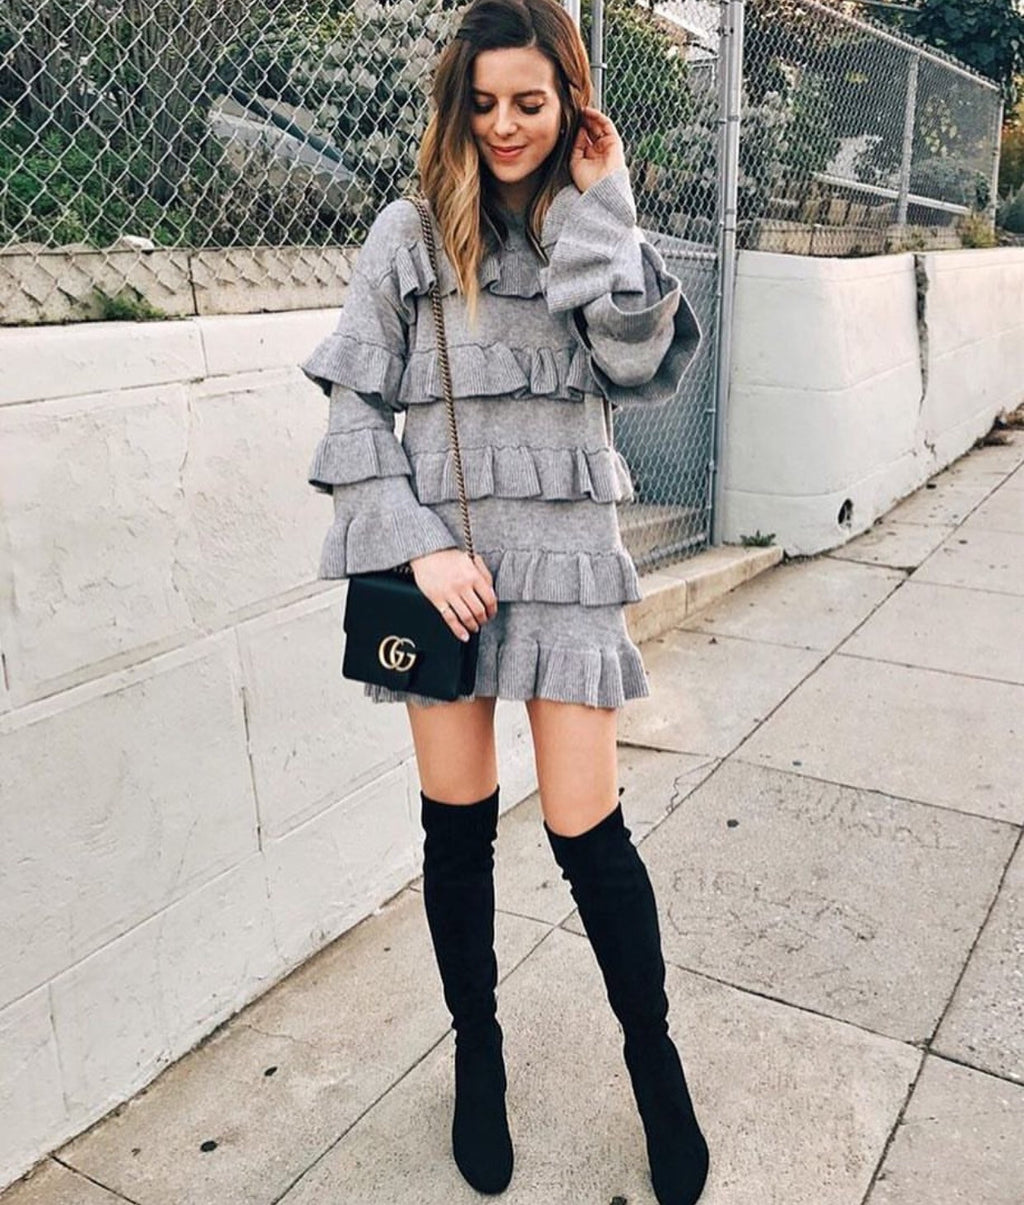 Susana ruffle grey knit dress